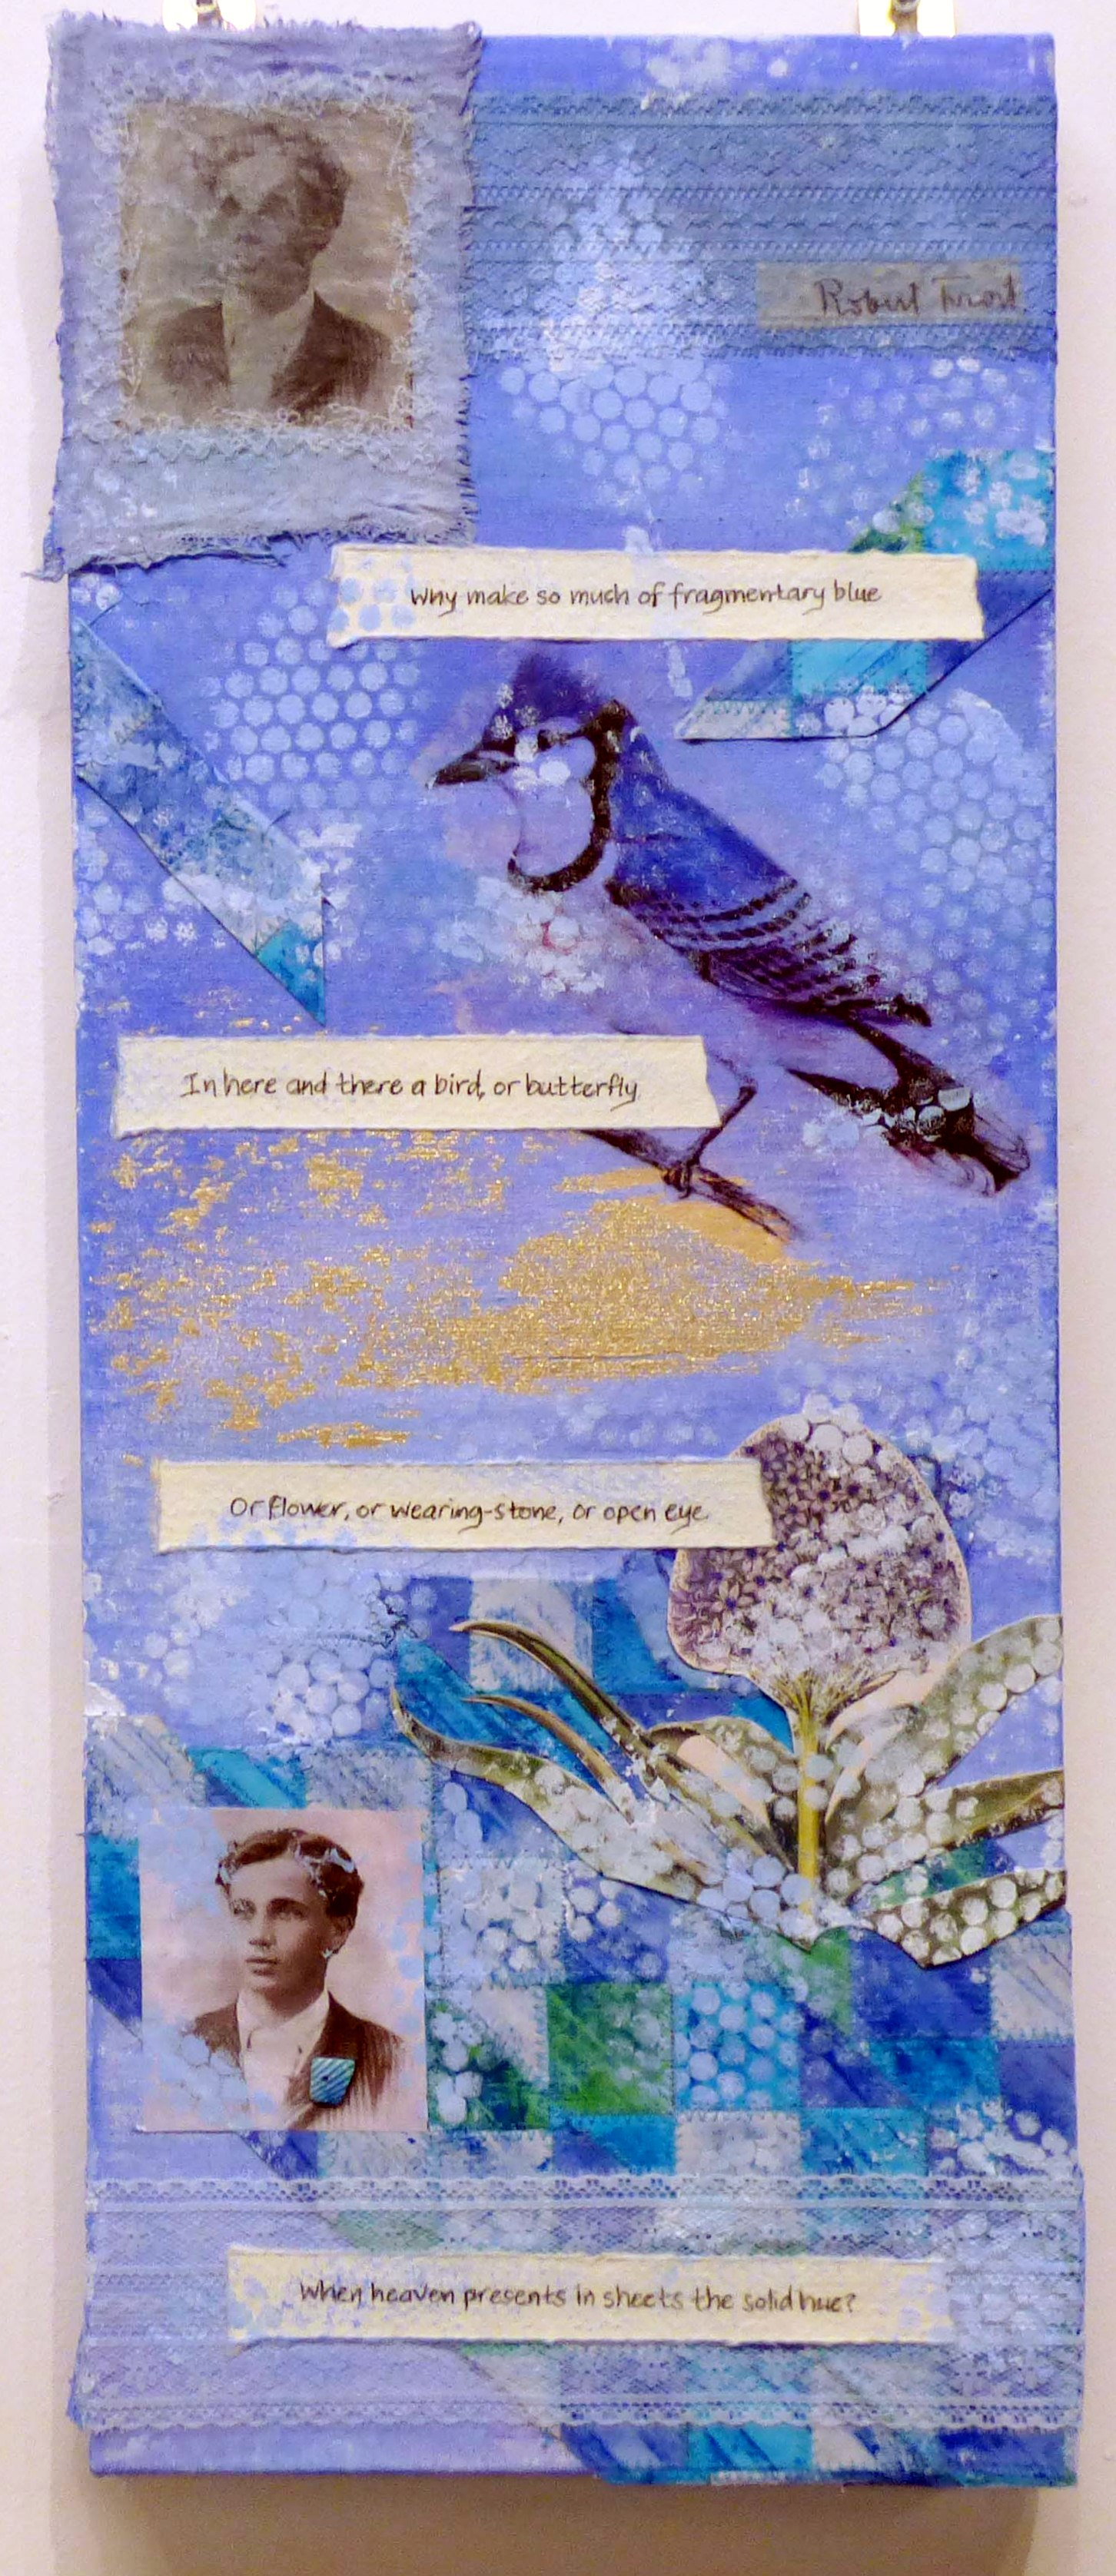 FRAGMENTARY BLUE by Sue Shepherd, Natural Progression Group, July 2021